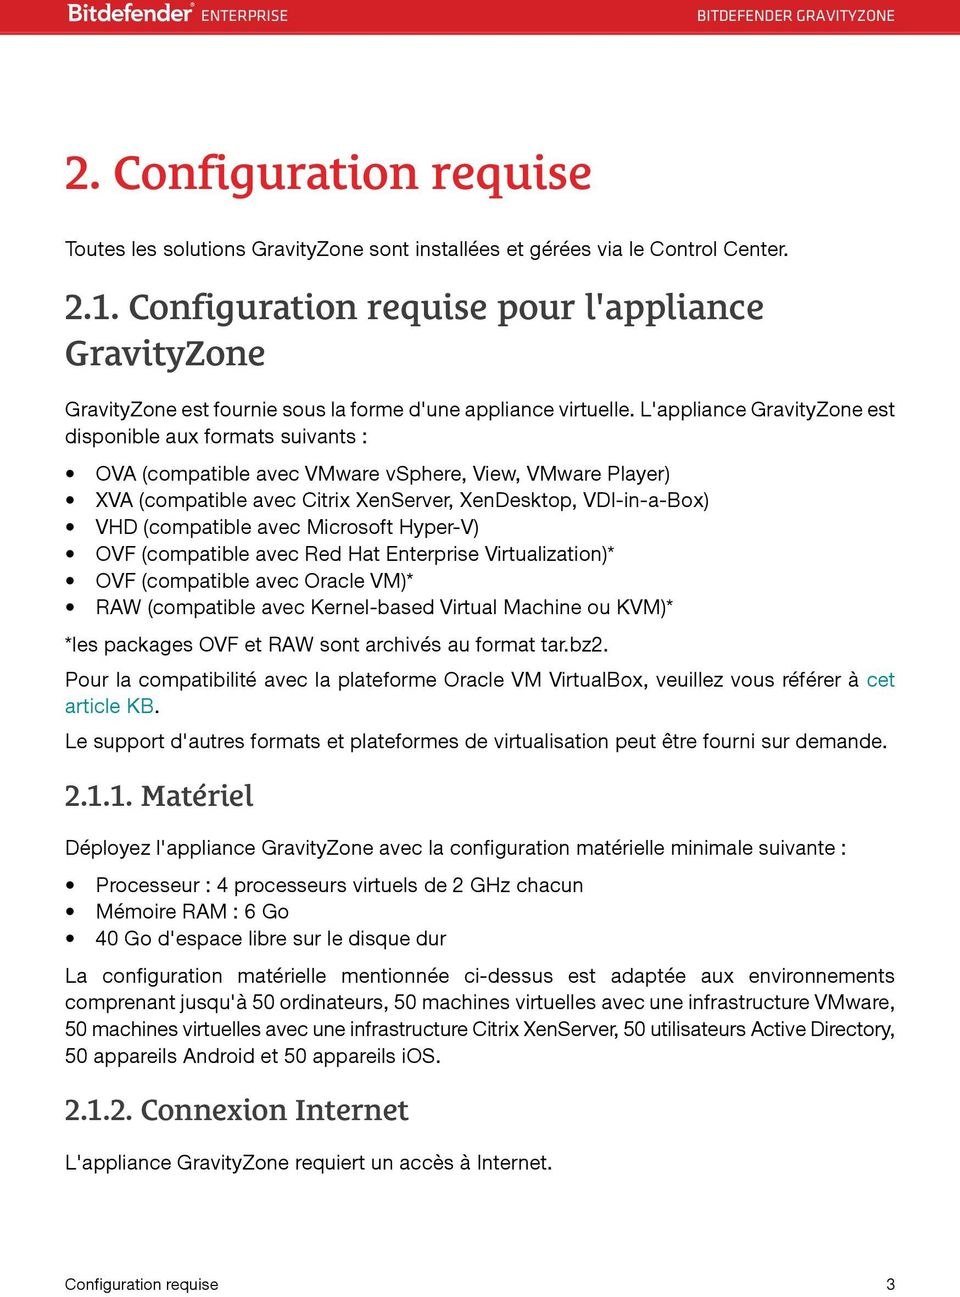 L'appliance GravityZone est disponible aux formats suivants : OVA (compatible avec VMware vsphere, View, VMware Player) XVA (compatible avec Citrix XenServer, XenDesktop, VDI-in-a-Box) VHD